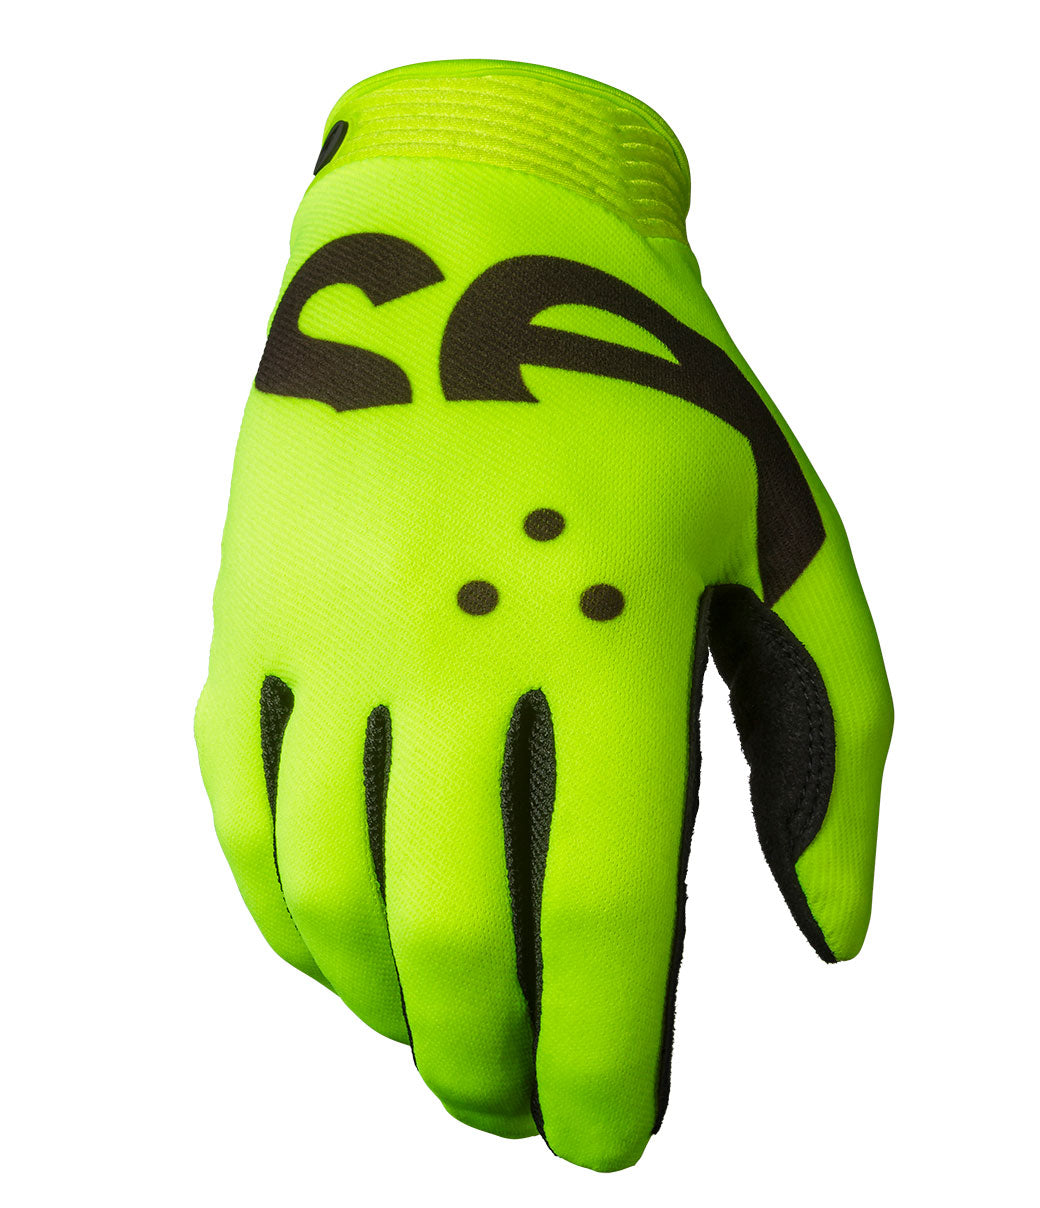 Zero Crossover Glove - Flow Yellow